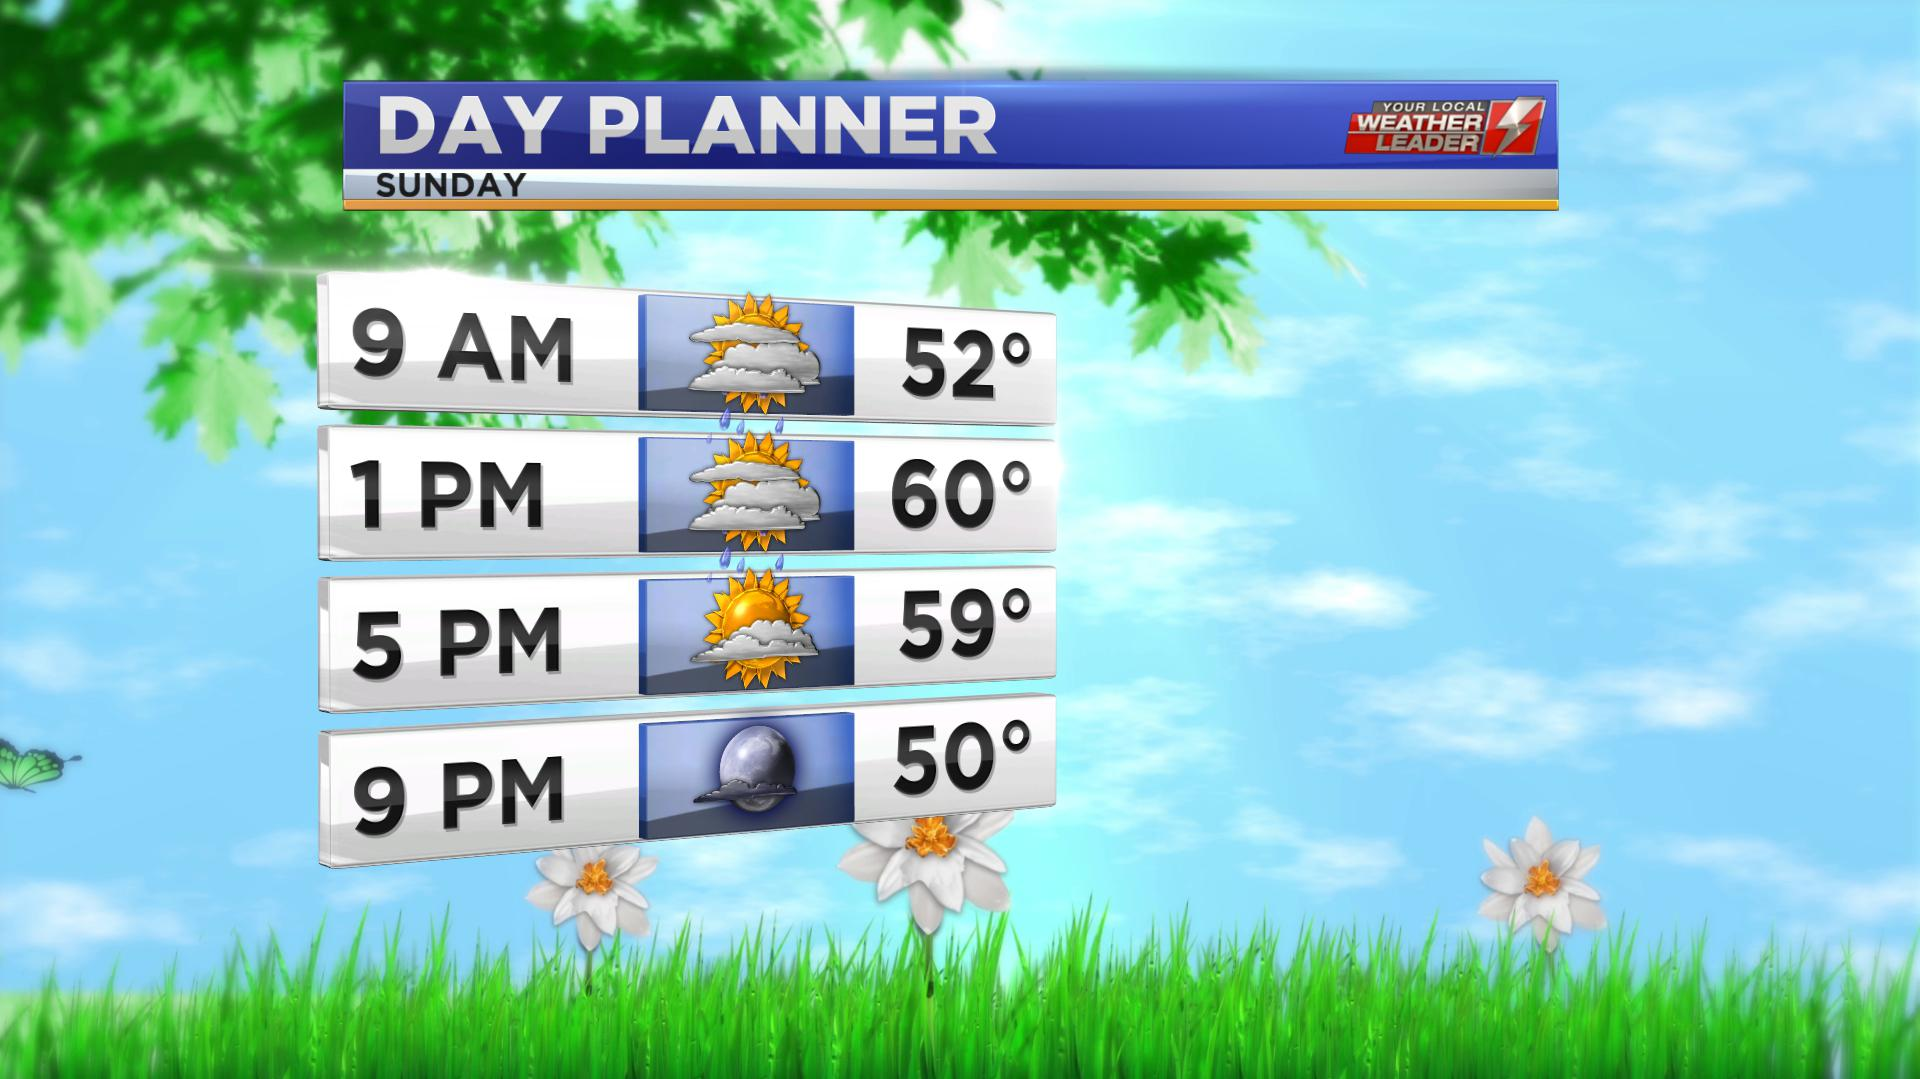 Day Planner for Sunday 28 April 2019